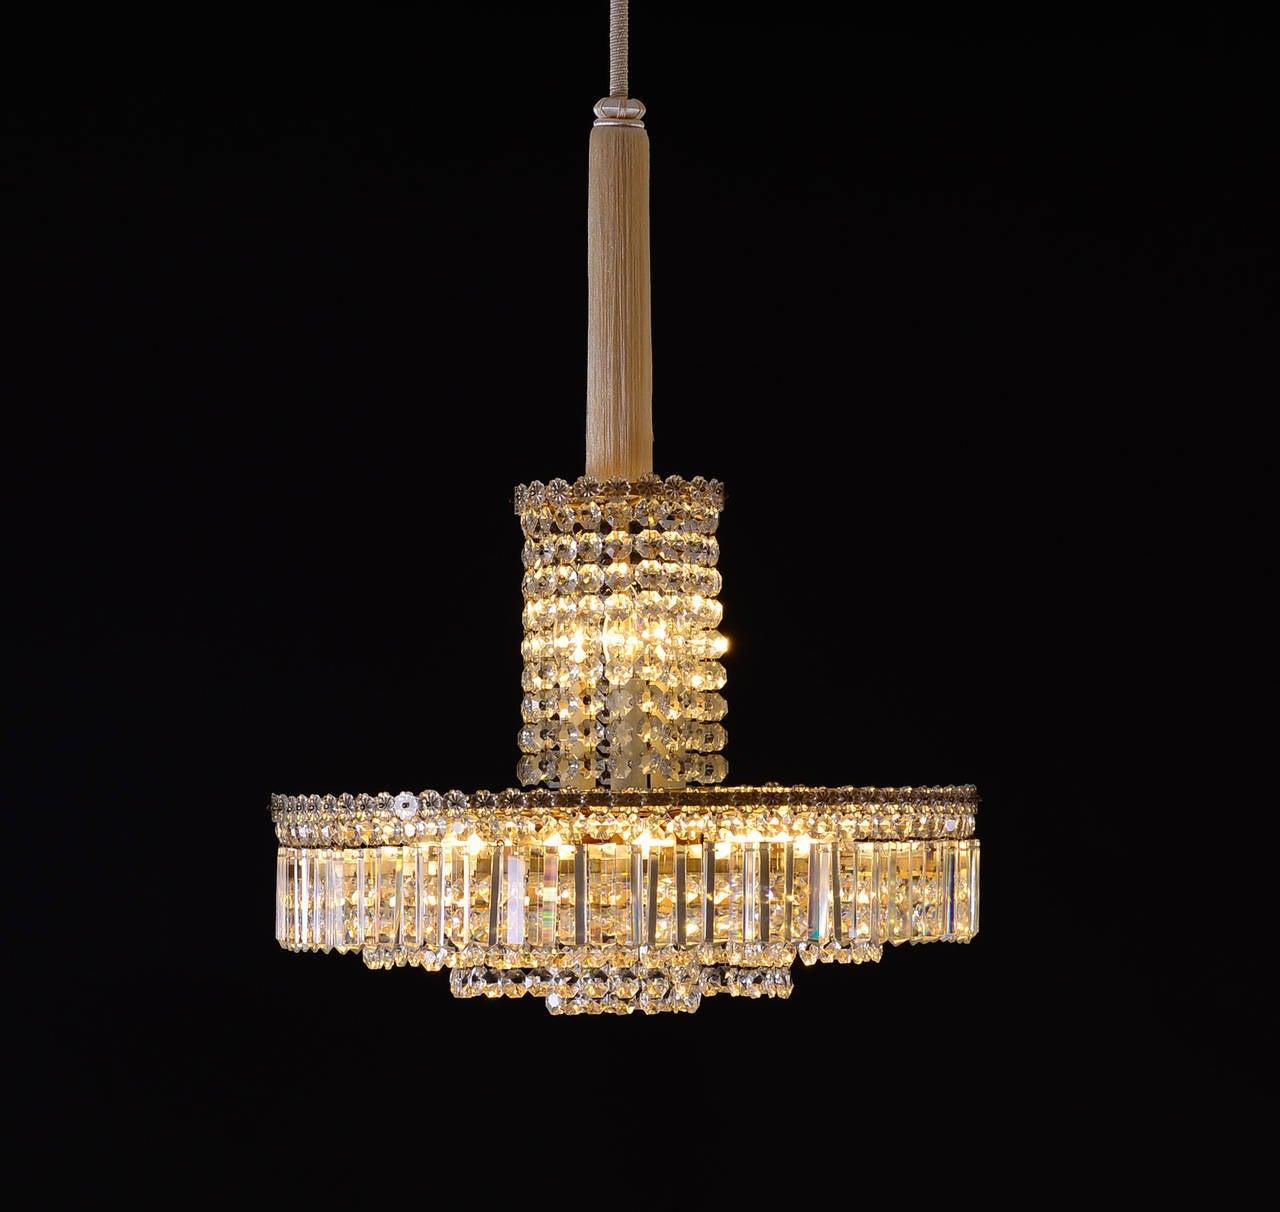 Austrian Original Elegant Mid-Century Modern Bakalowits Chandelier from the 1960s For Sale